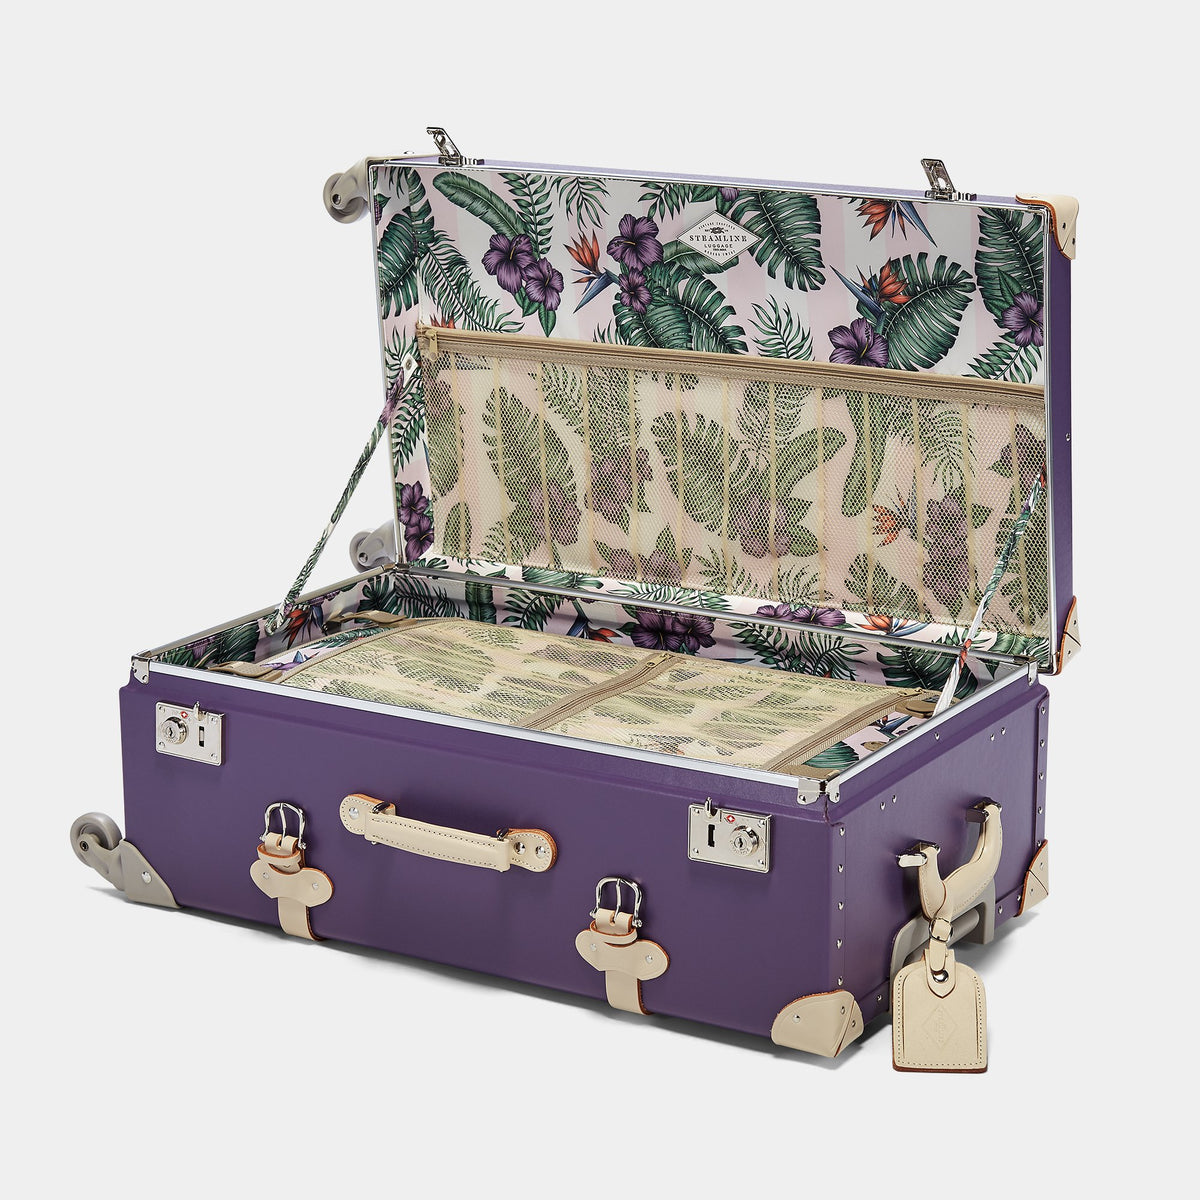 The Botanist Spinner in Purple - Vintage-Inspired Trunk Suitcase - Interior